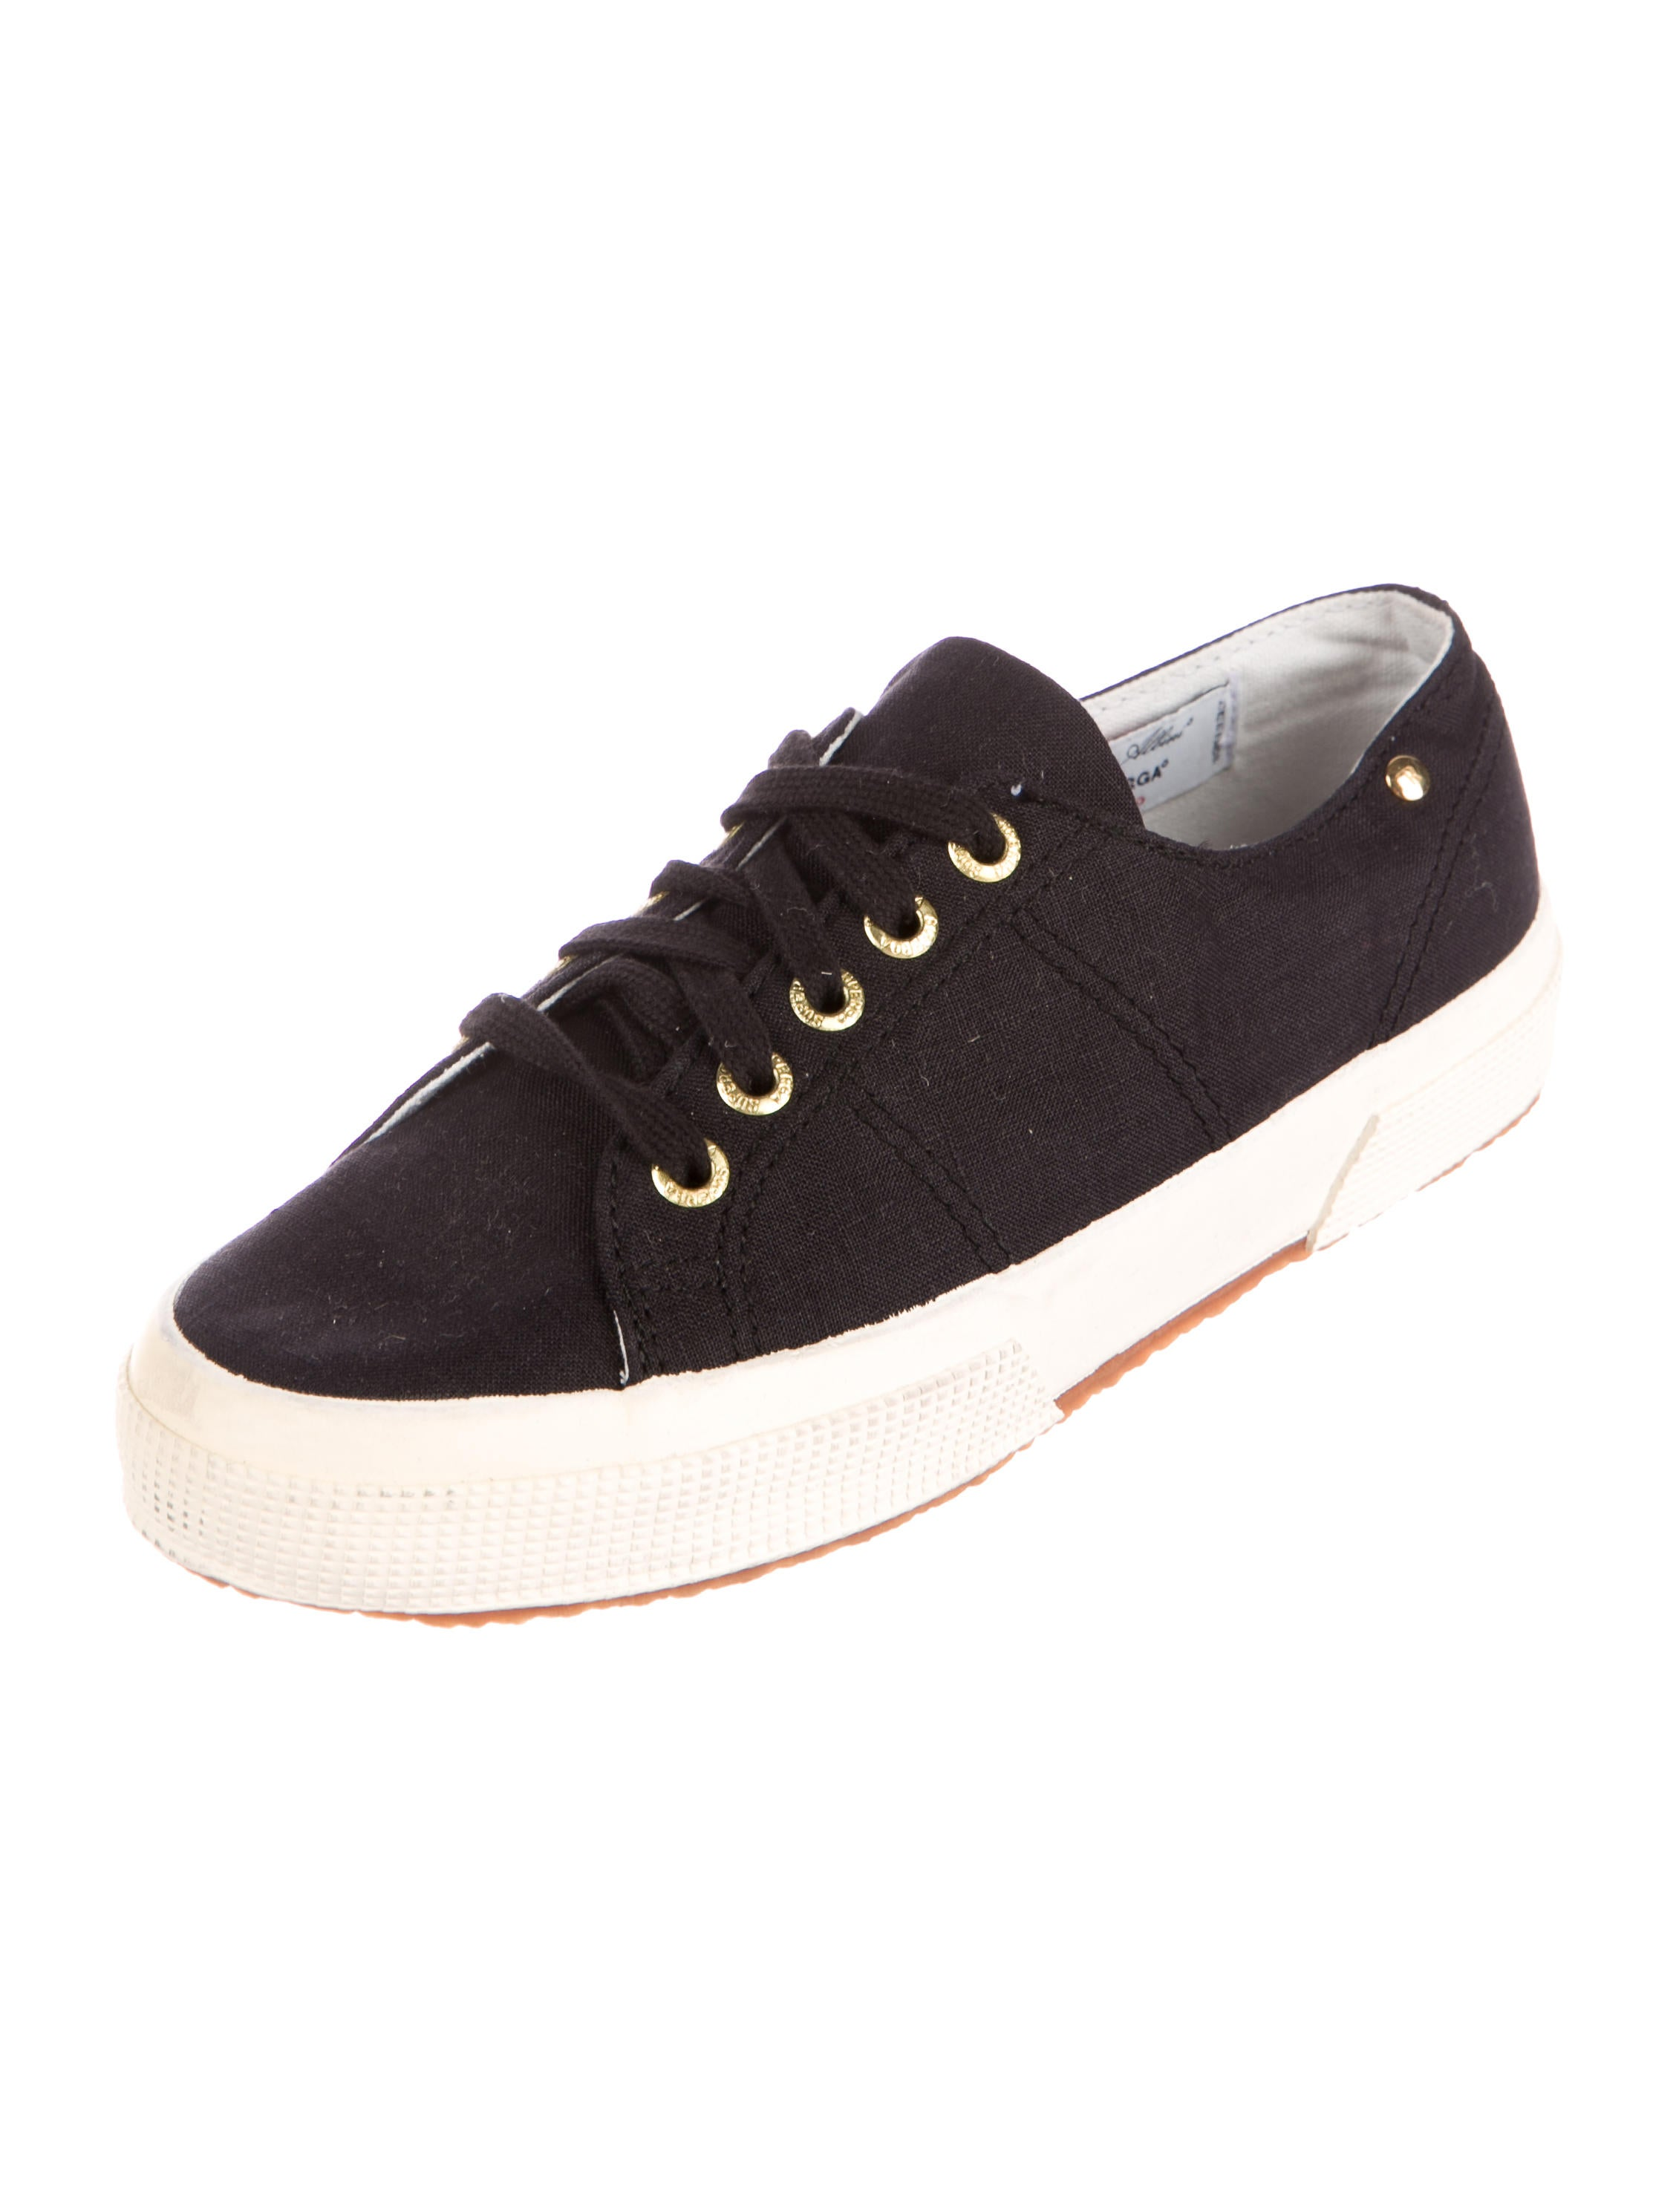 For sale online lowest price online Superga x The Row Cotonificio Albini Low-Top Sneakers lowest price cheap online new styles online dJzqjWsBam